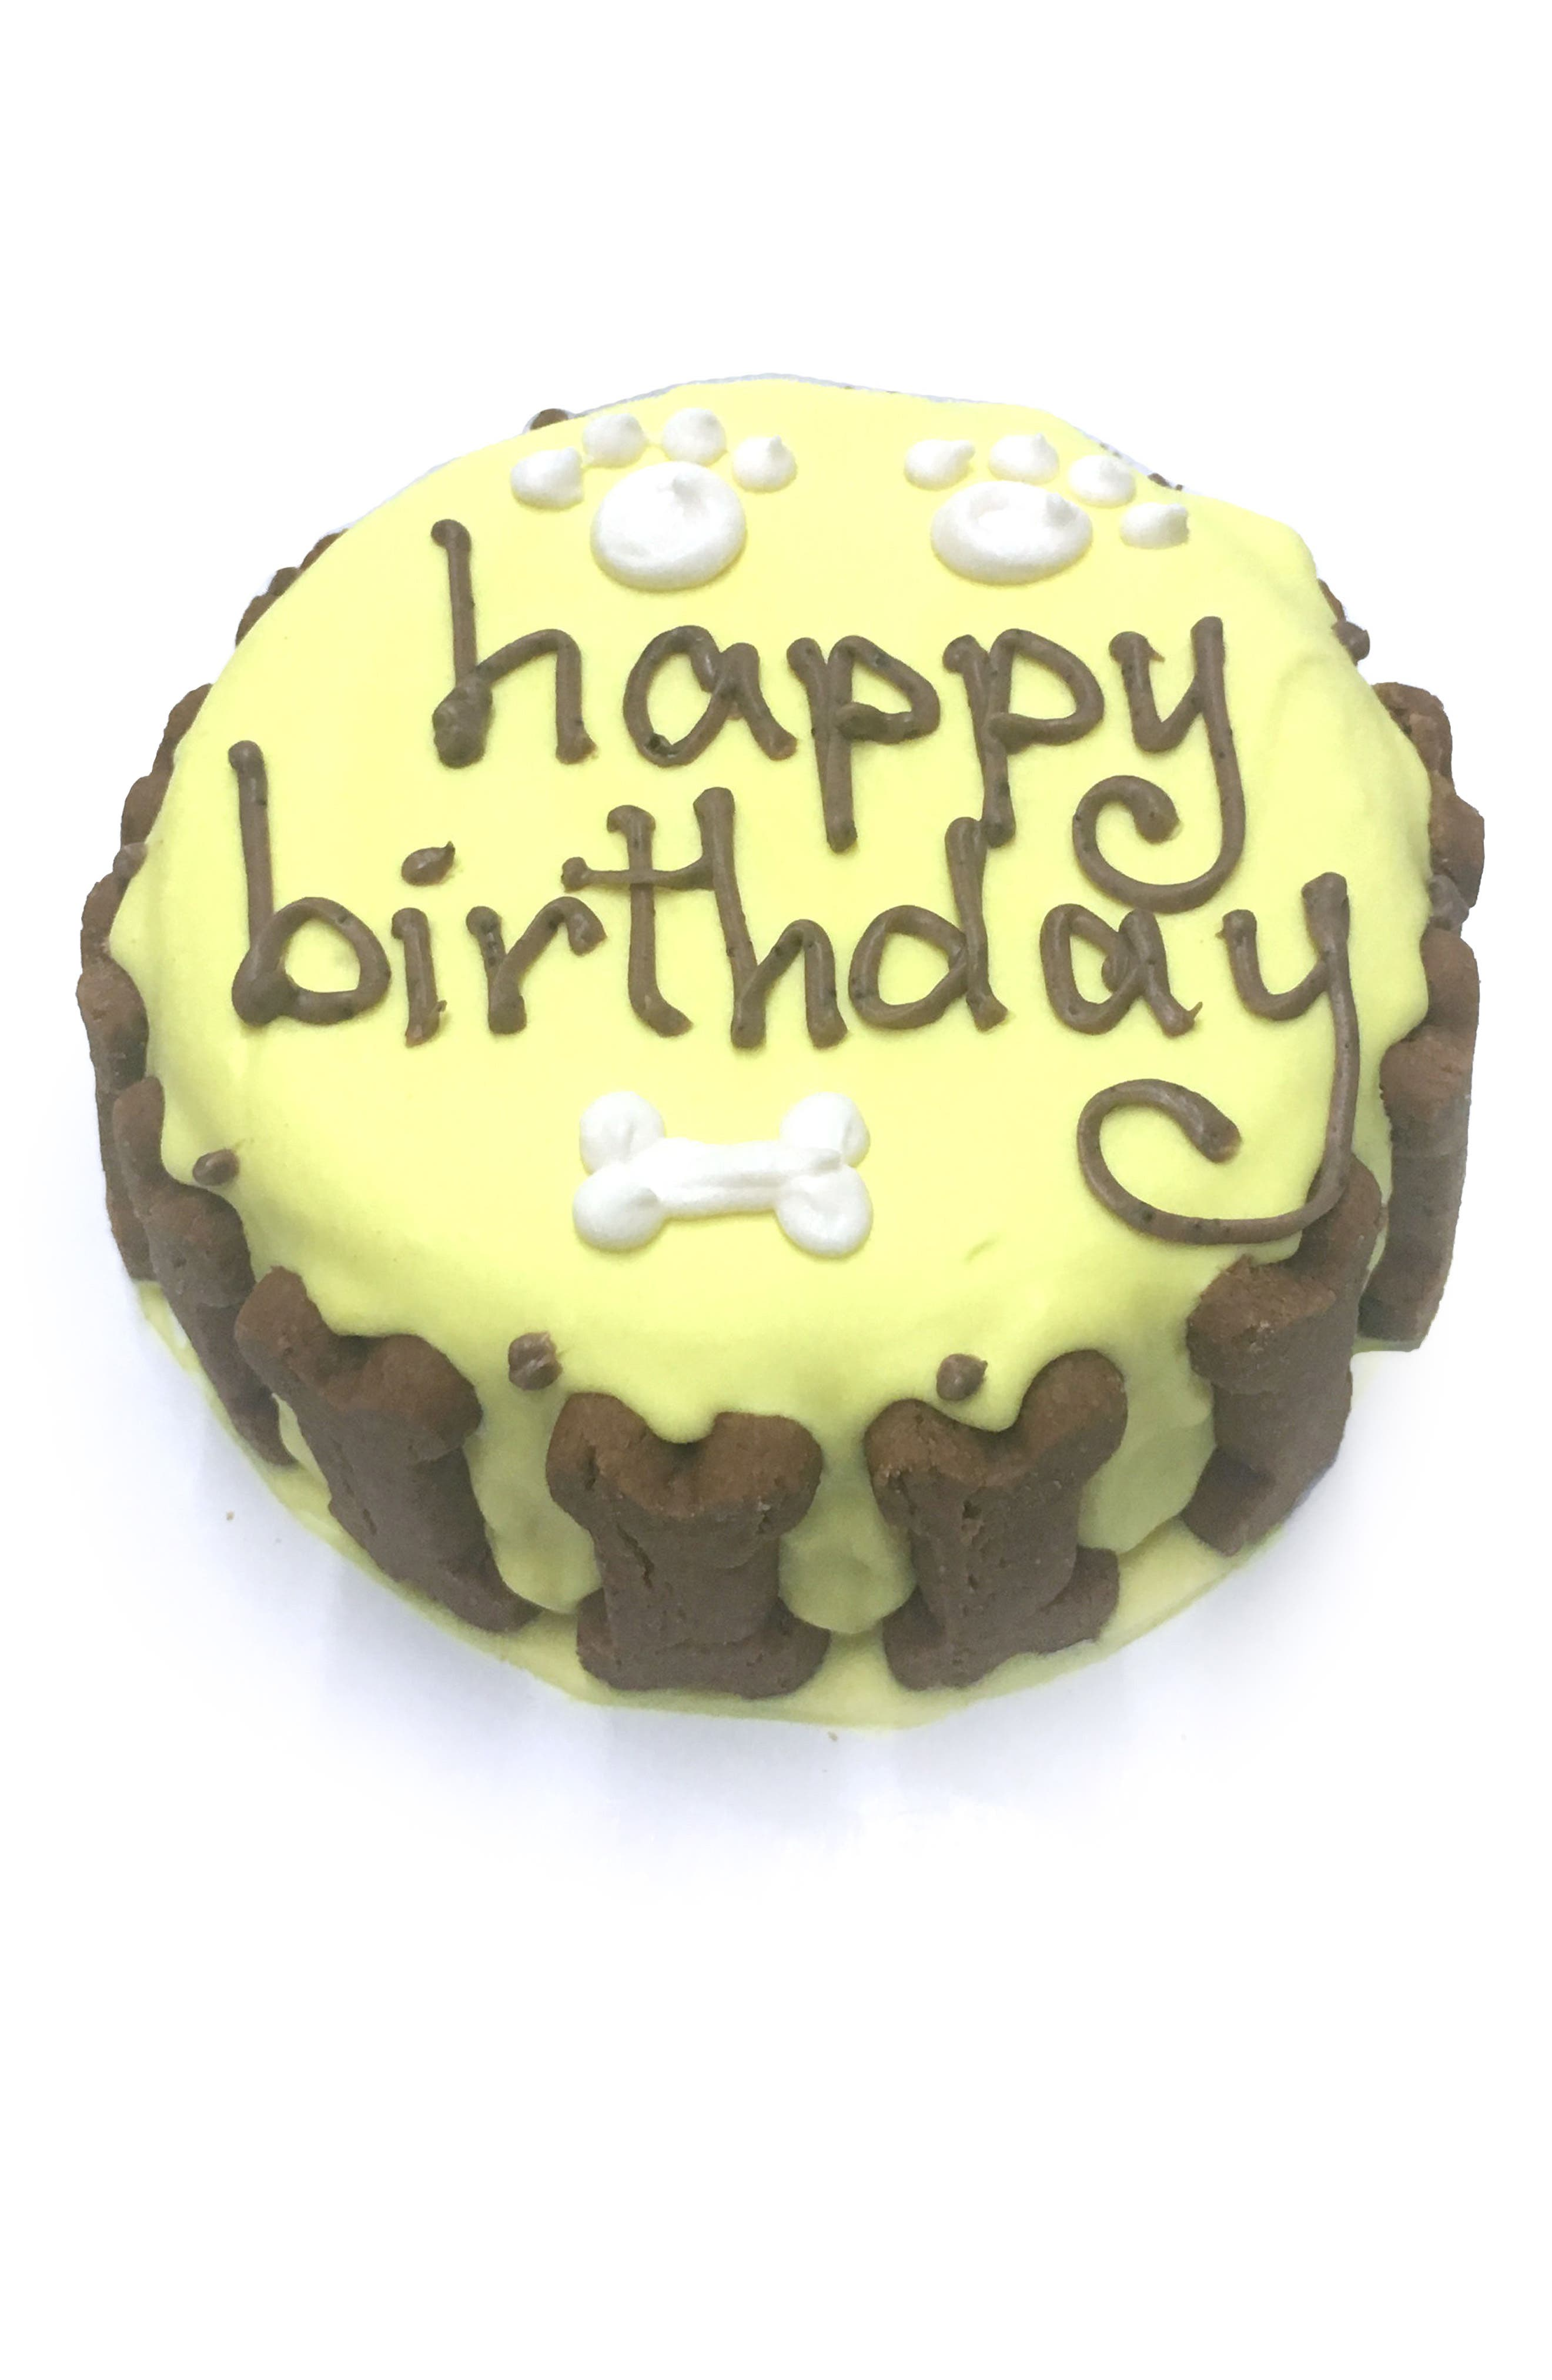 Bubba Rose Biscuit Company Yellow Classic Birthday Cake Dog Treat,                             Main thumbnail 1, color,                             700